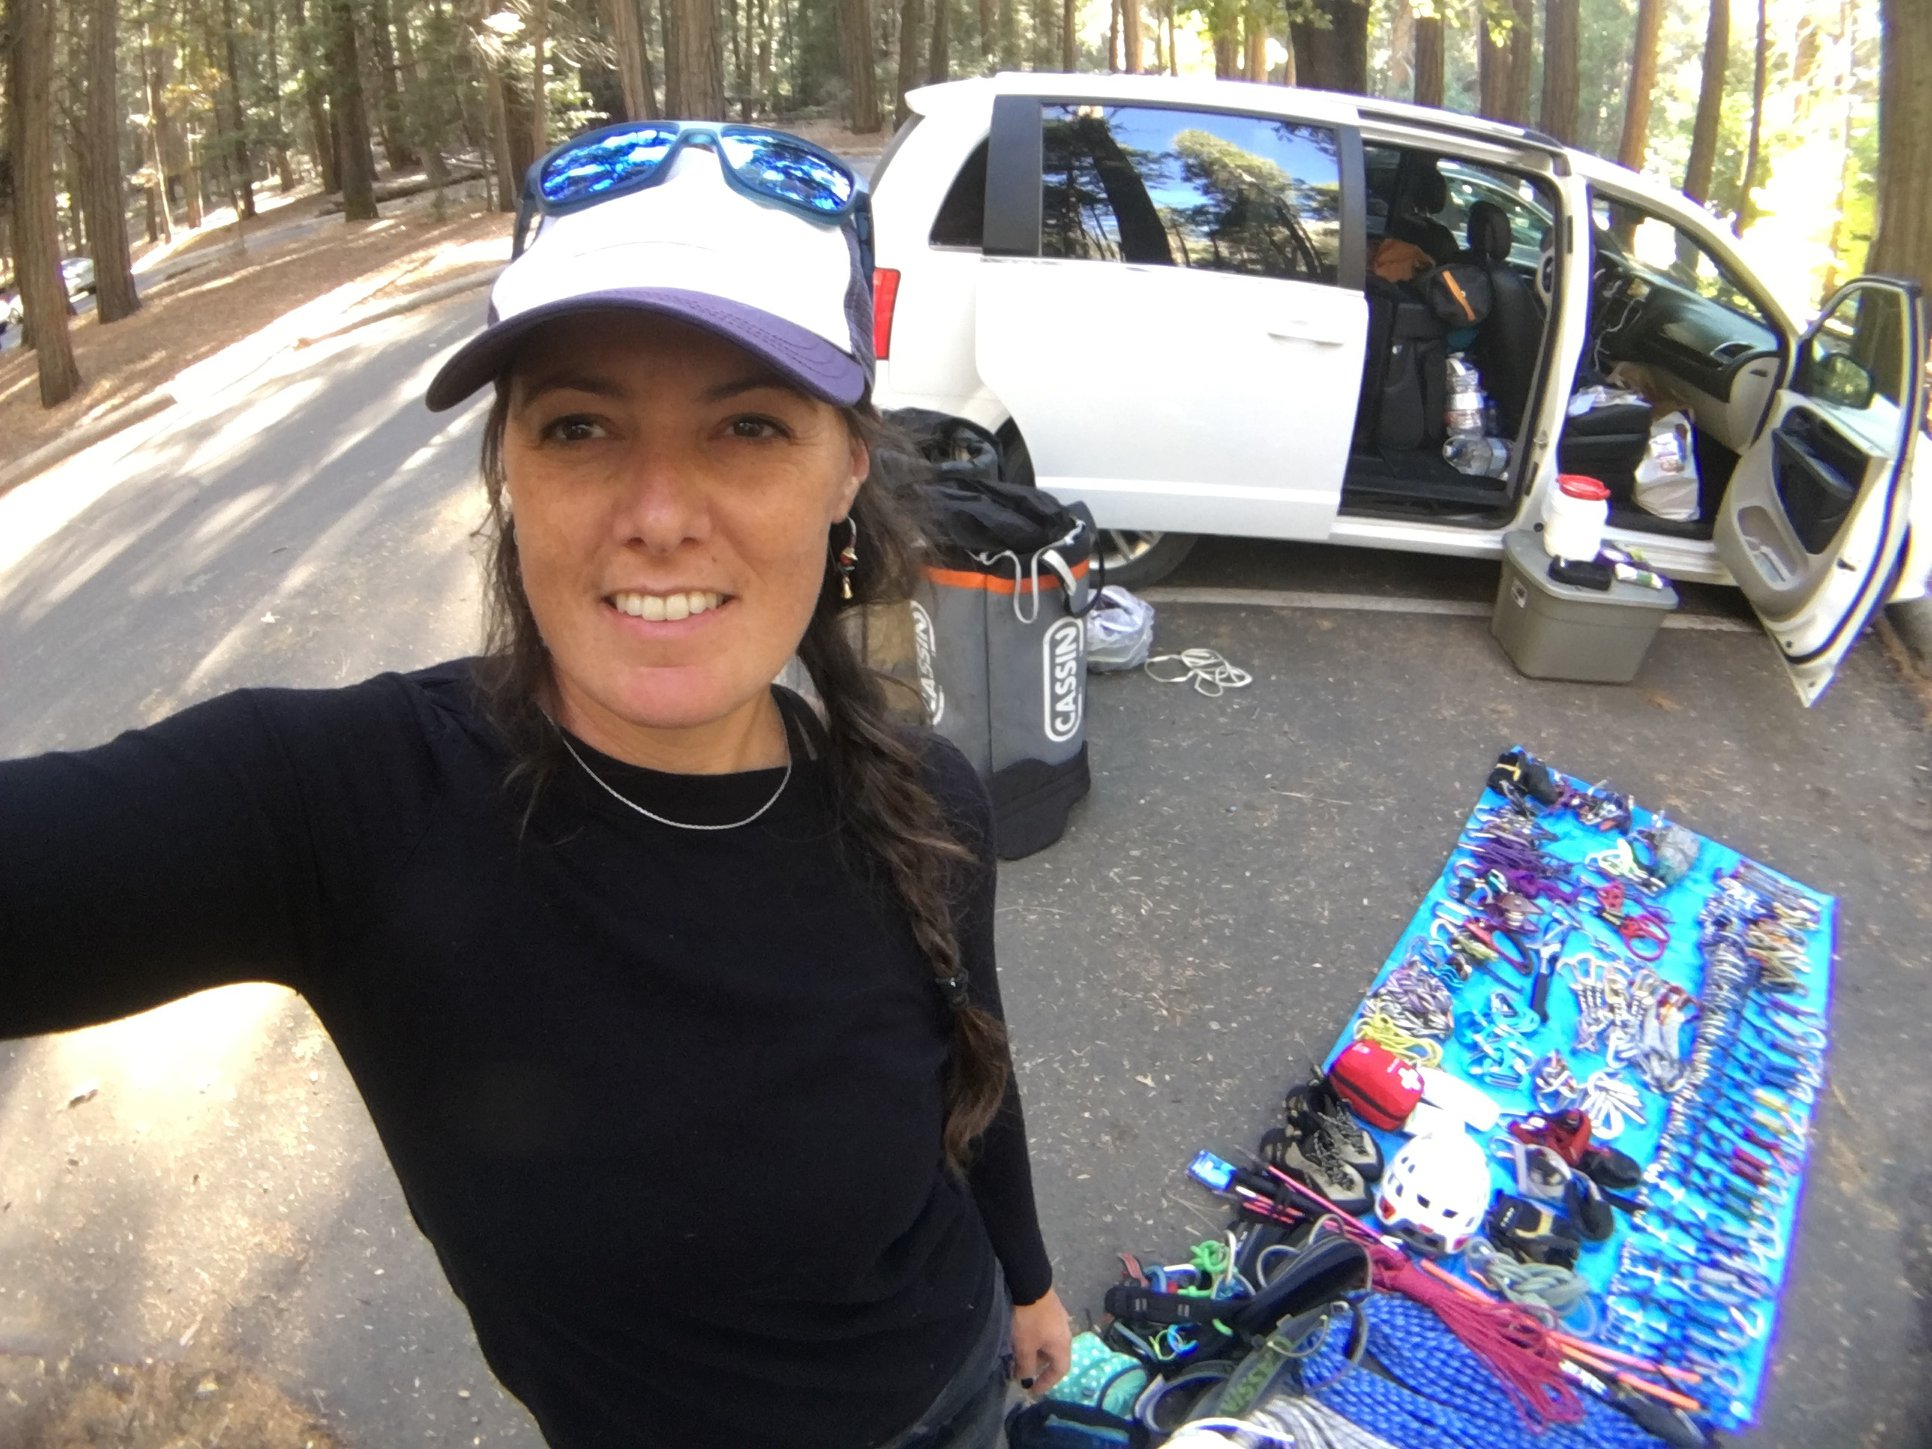 Julia Virat:  A local guide and Rab athlete, last year she fulfilled a life-long dream to solo El Capitan on Triple Direct - that includes three of Yosemite's classics!!